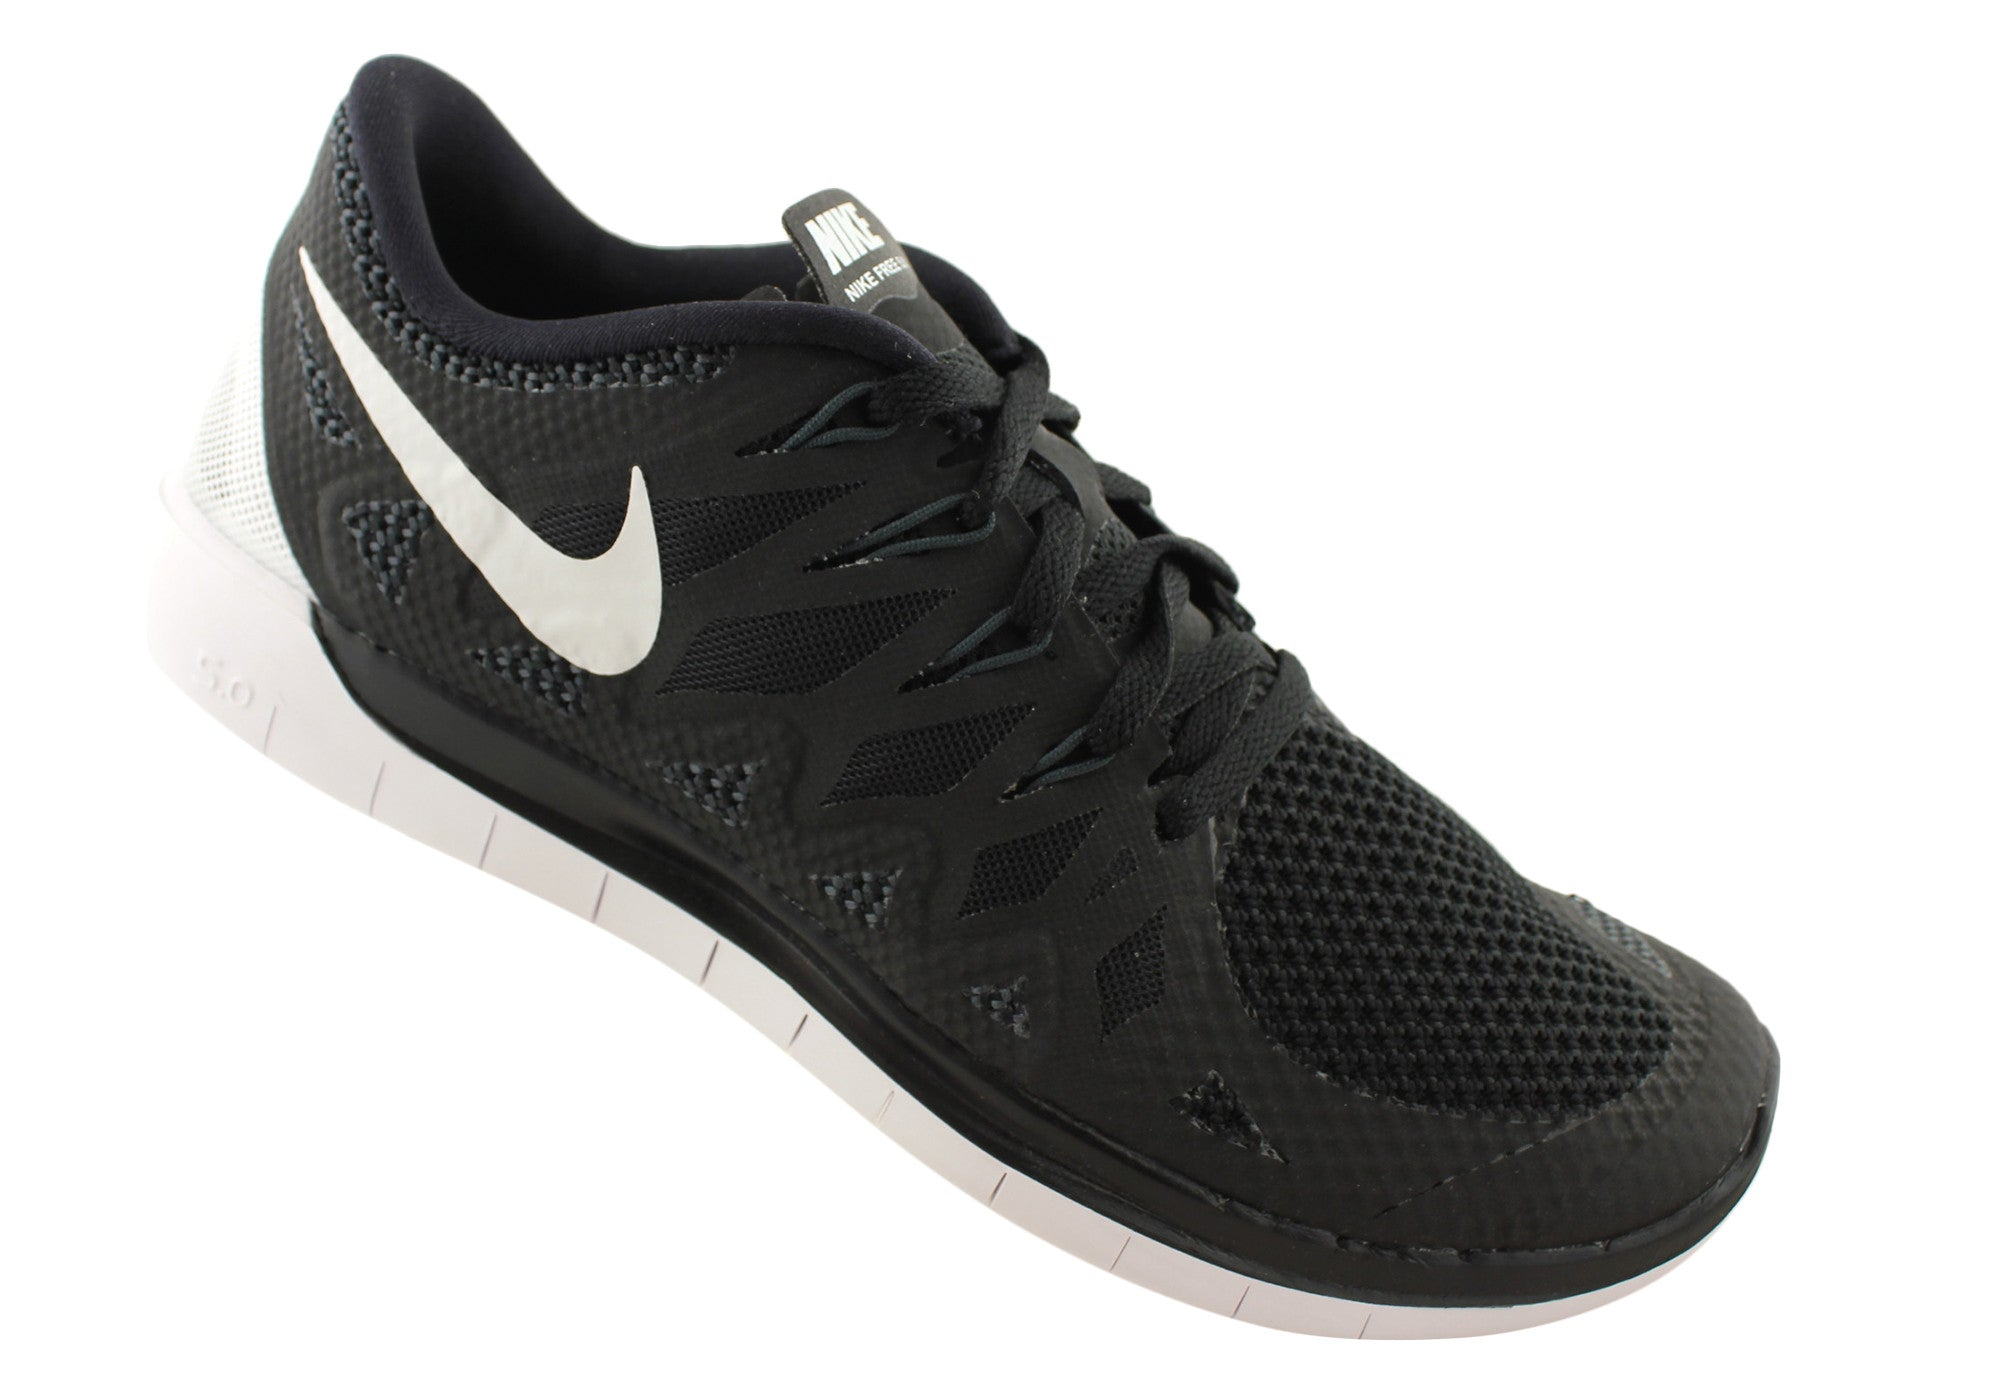 Nike Free 5.0 Mens Barefoot Running Shoes | Brand House Direct